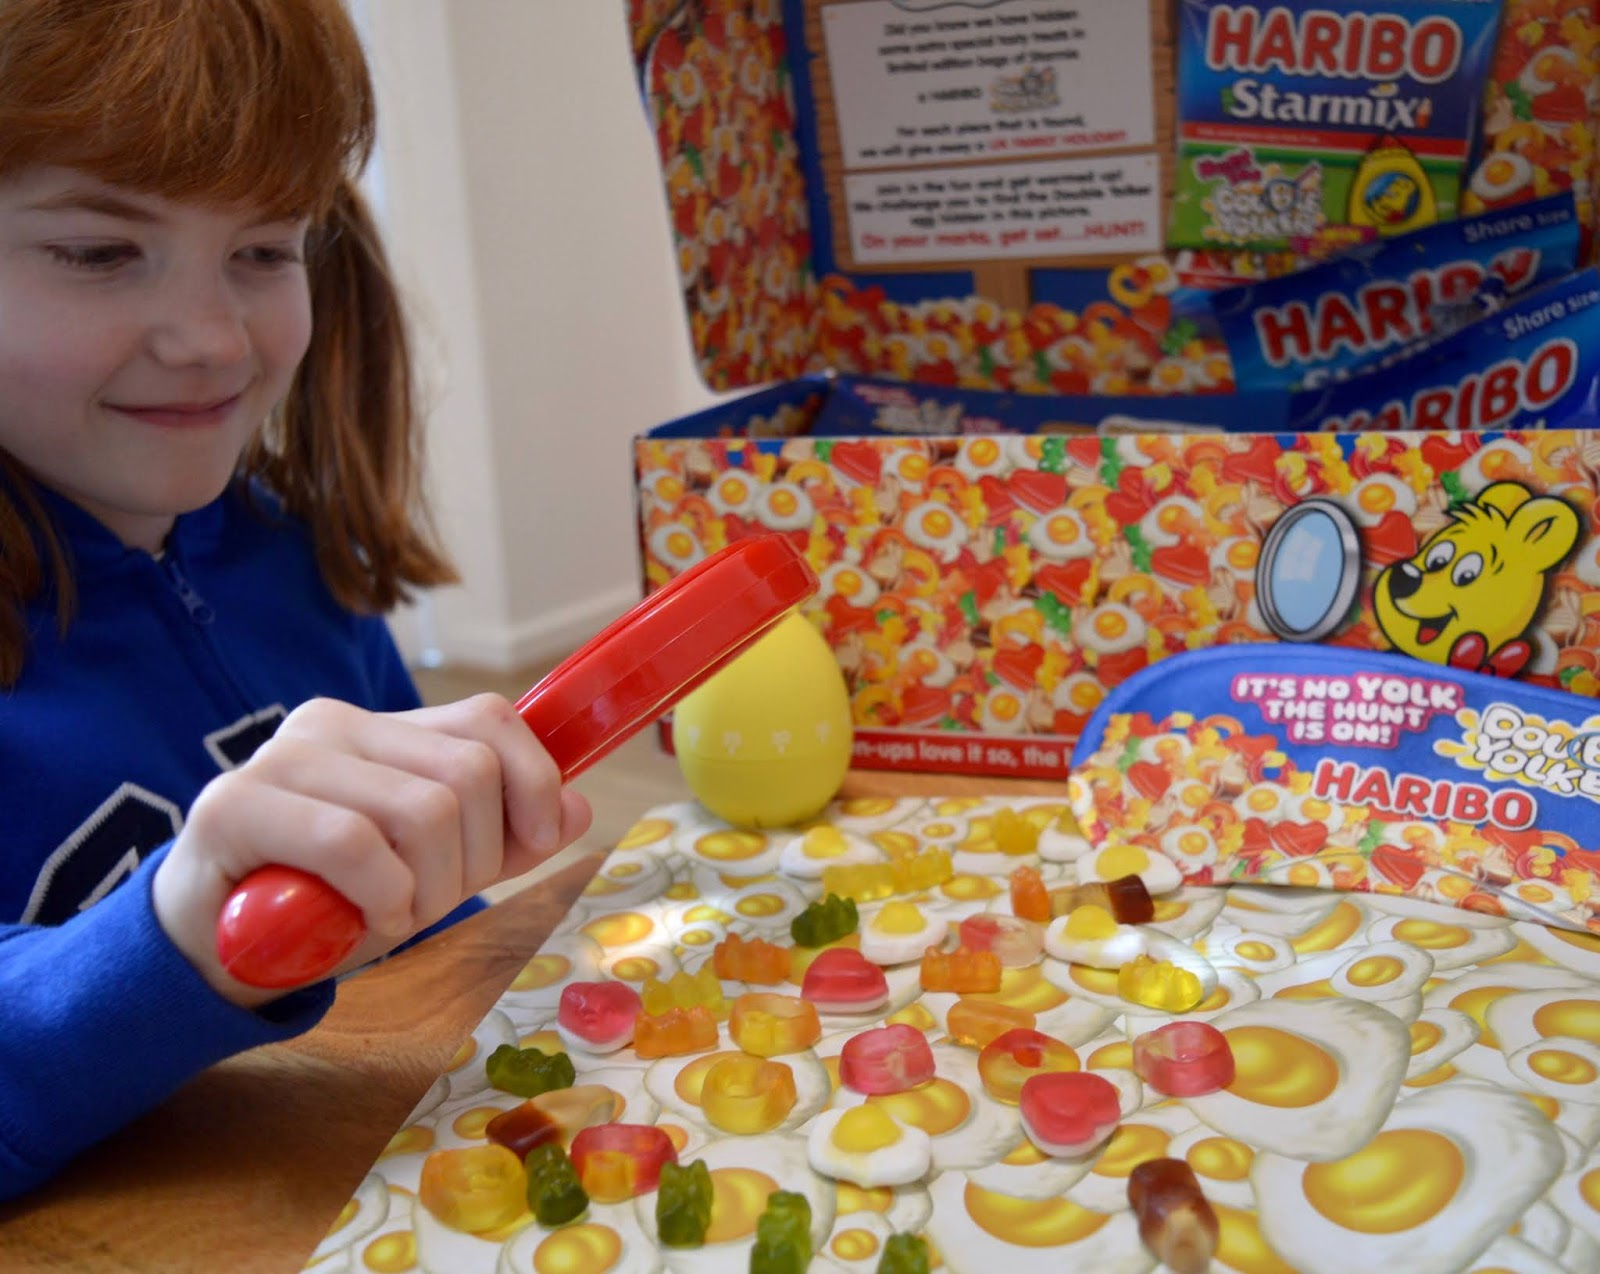 'Hunt the Double Yolker' with HARIBO for your chance to WIN 1 in 20 Forest Holidays - searching for the double yolker